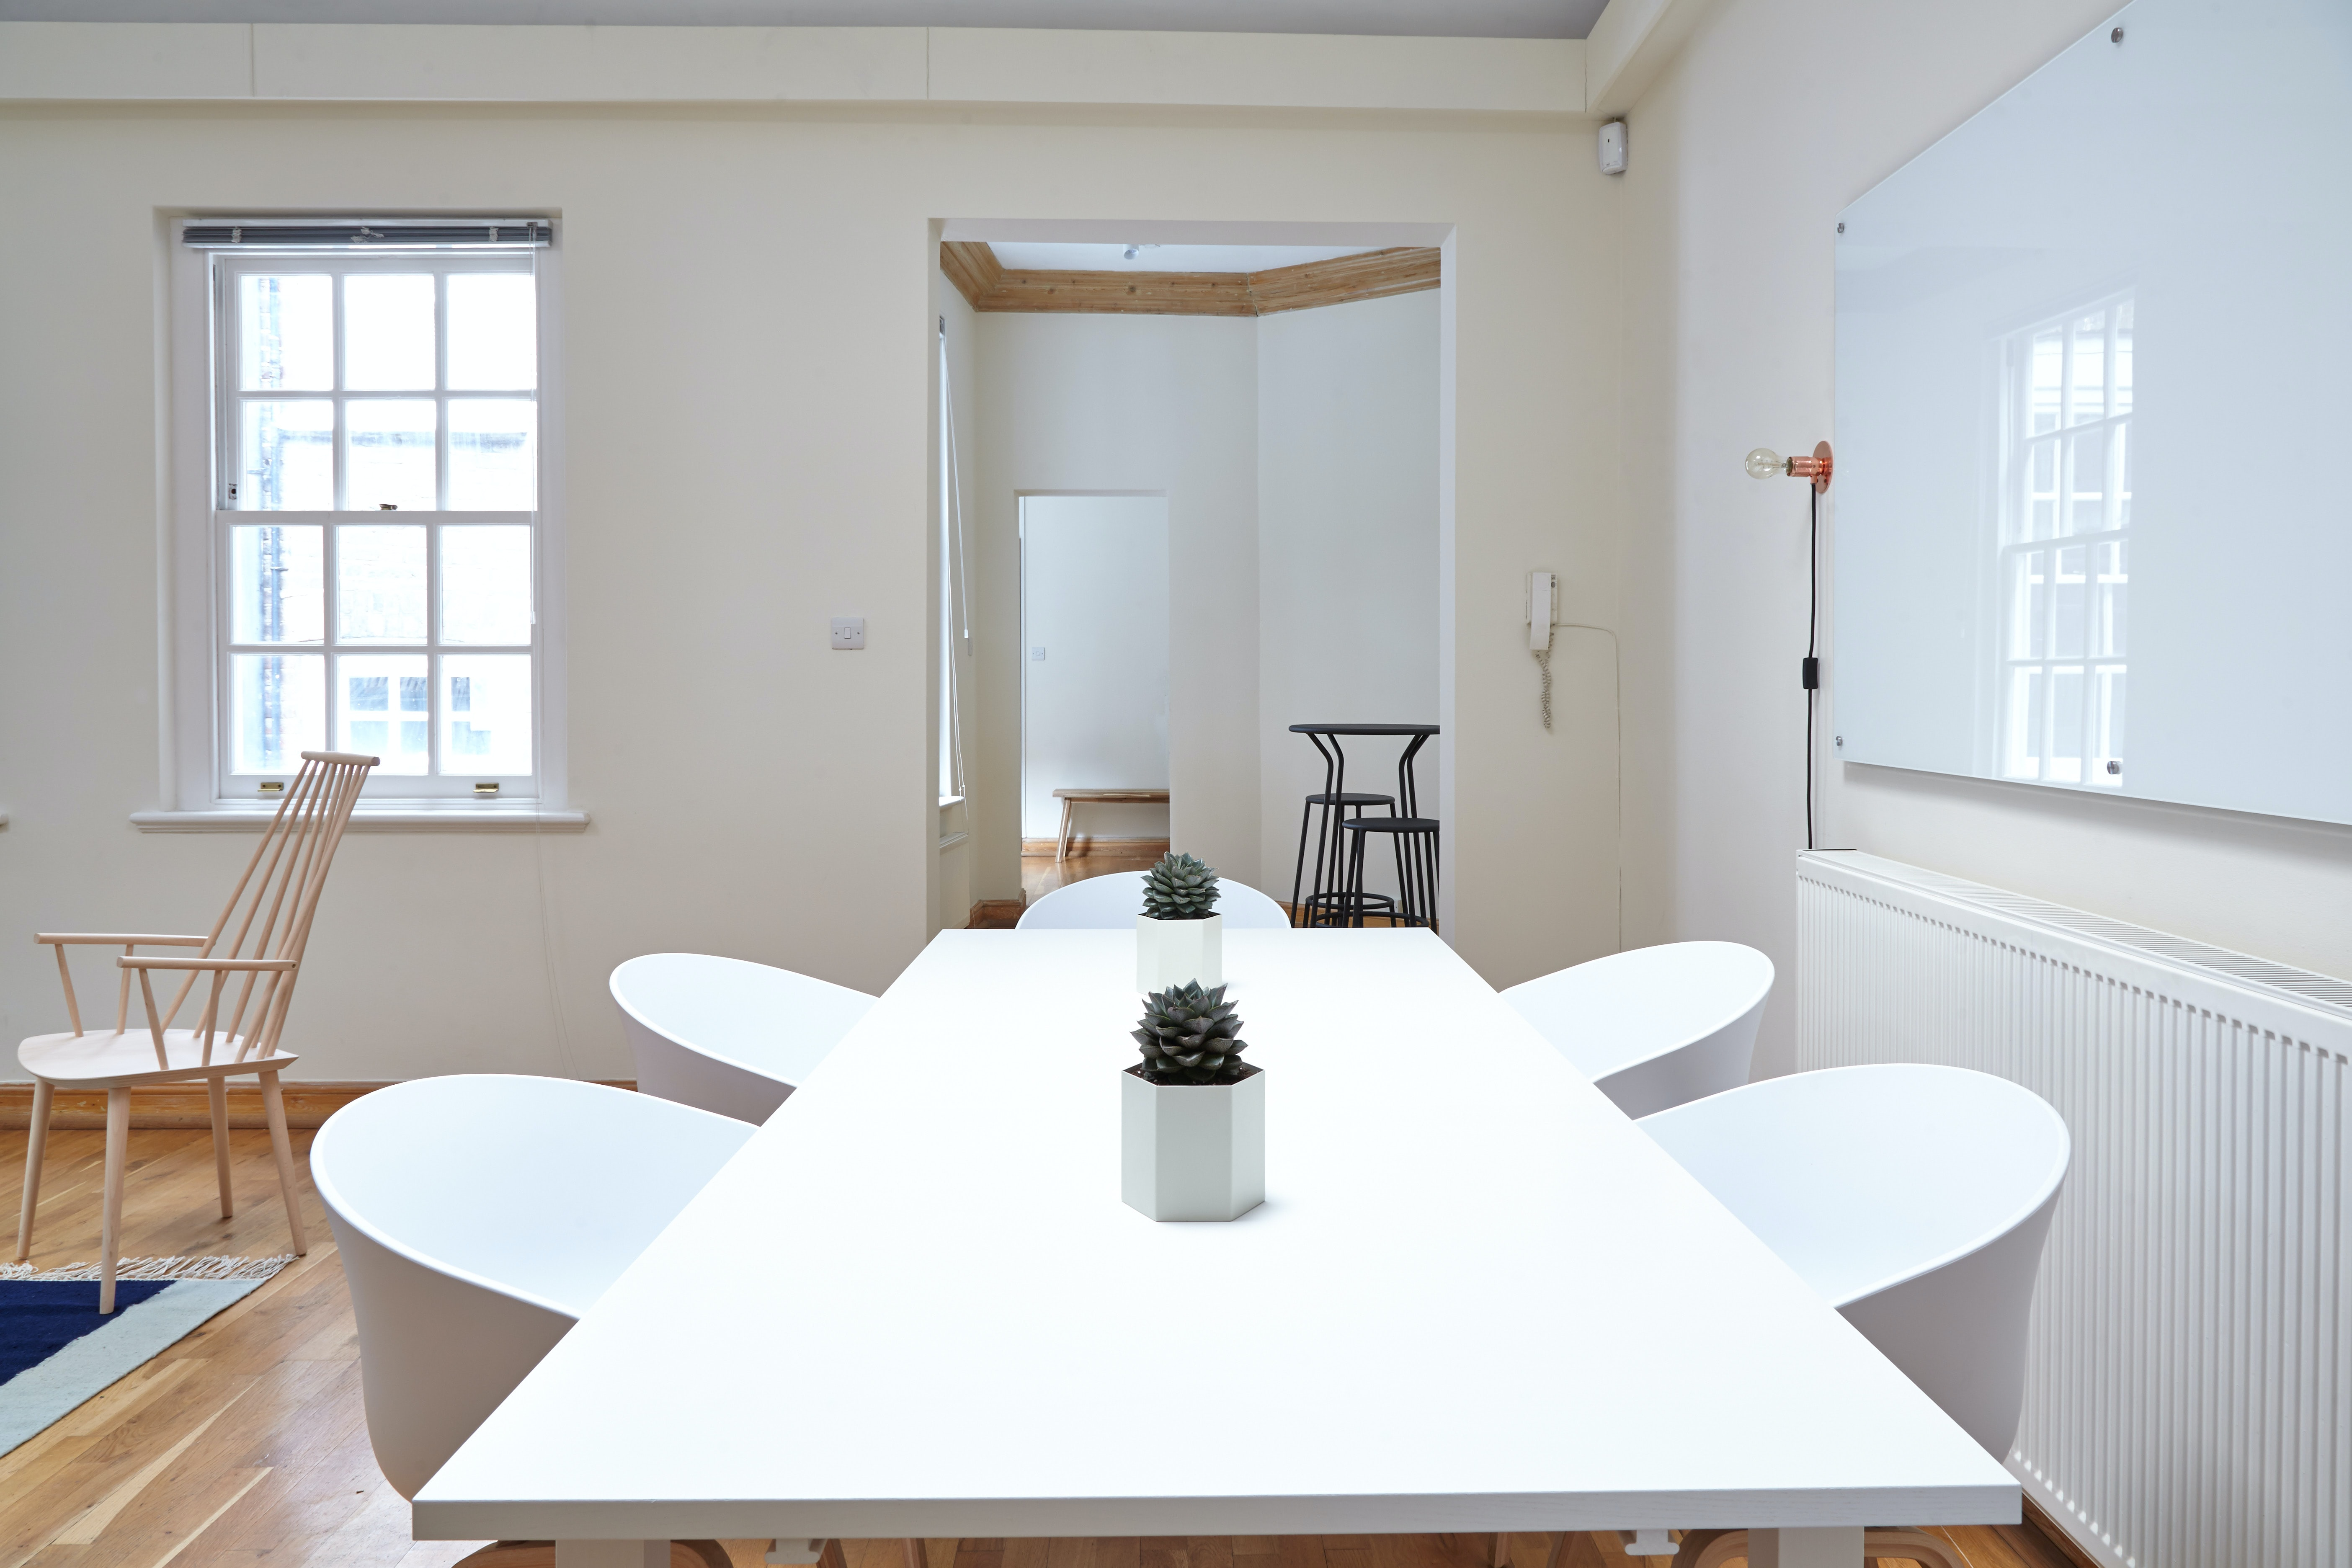 An office space with a white table and a whiteboard on a wall